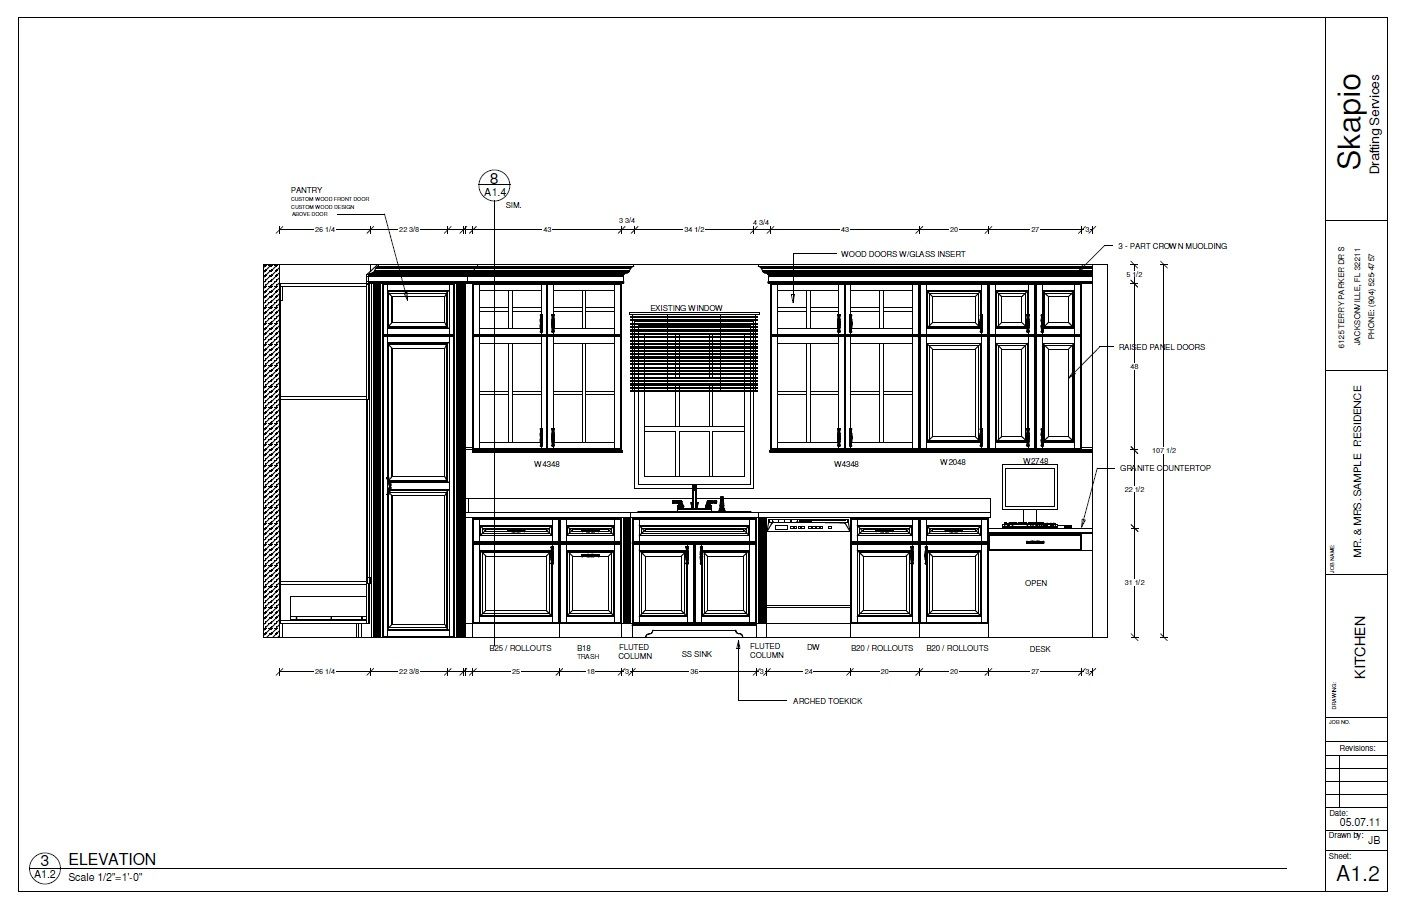 Kitchen Plan Elevation : Sample kitchen elevation shop drawings pinterest